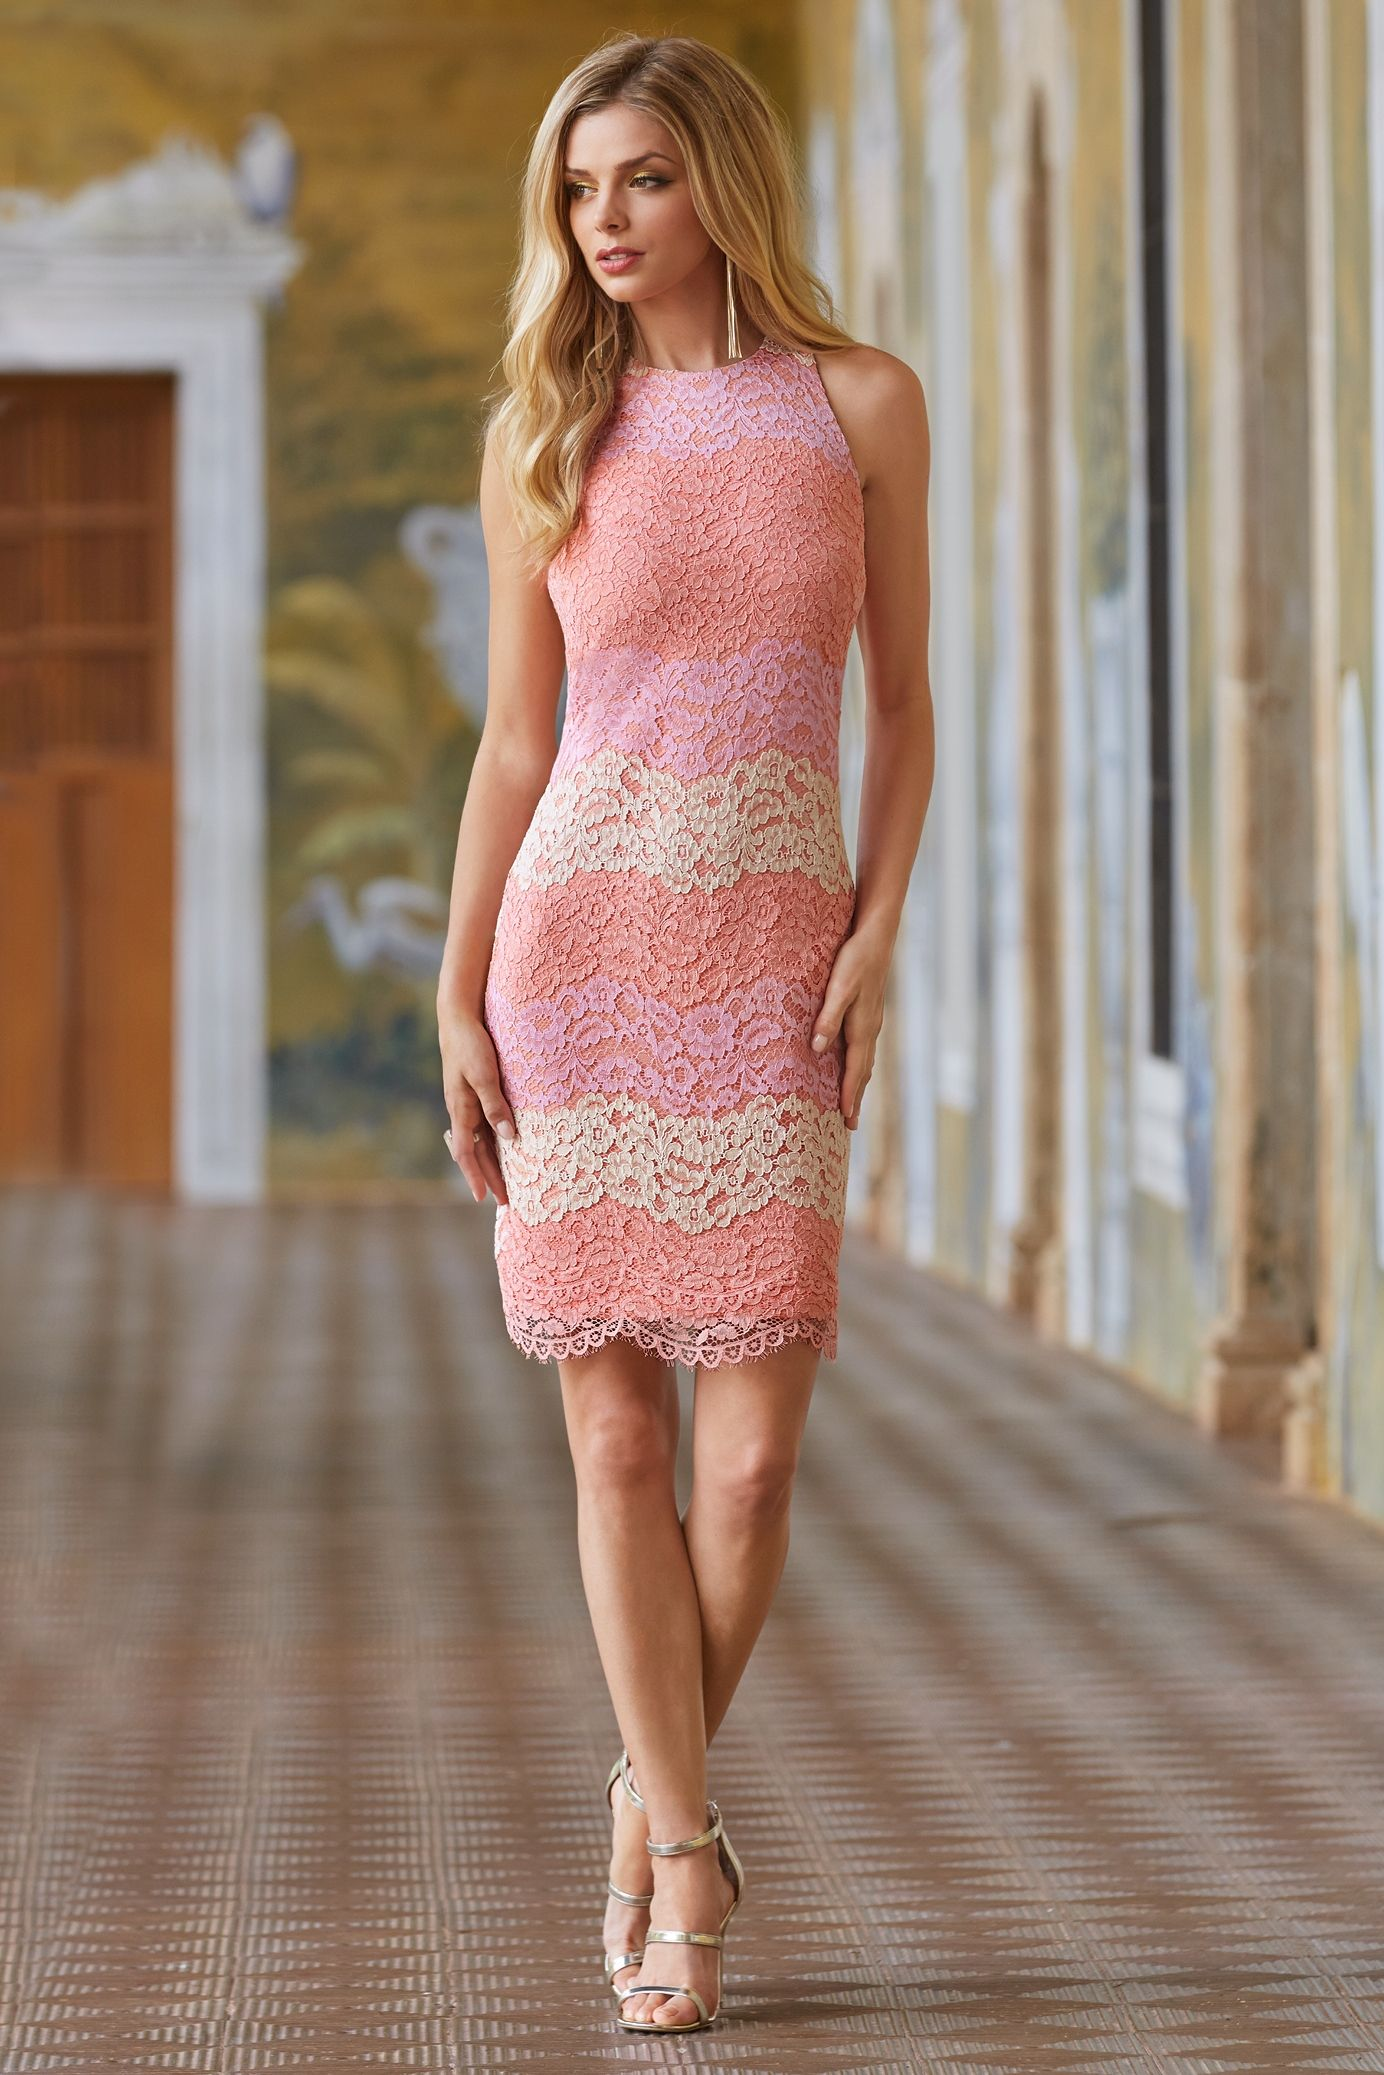 Contrast lace sheath dress | Vestiditos